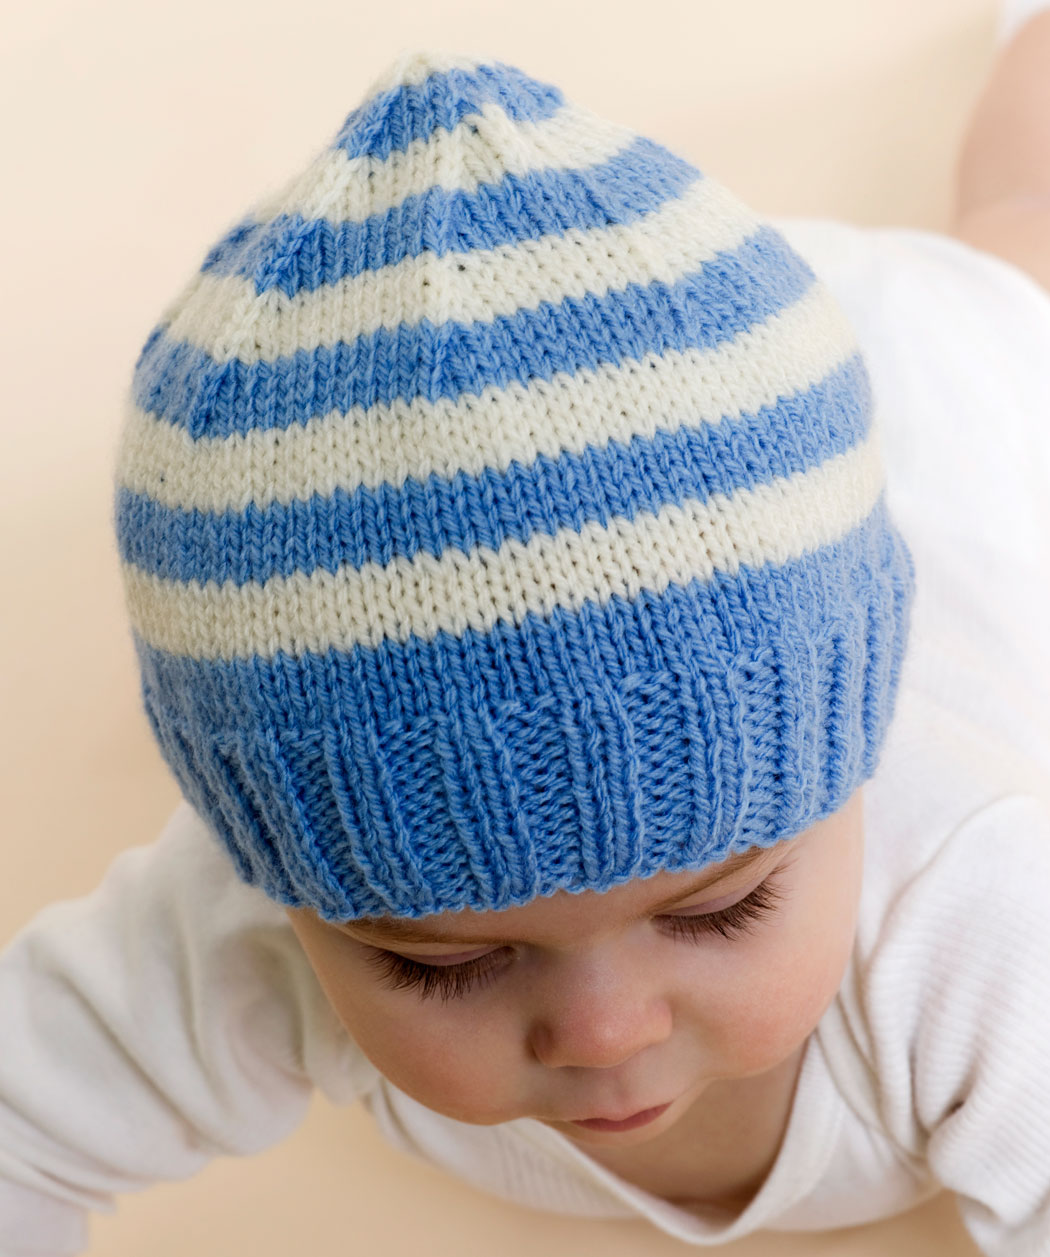 Knitting Pattern For Baby Sun Hat : Knitting Hats   Tag Hats